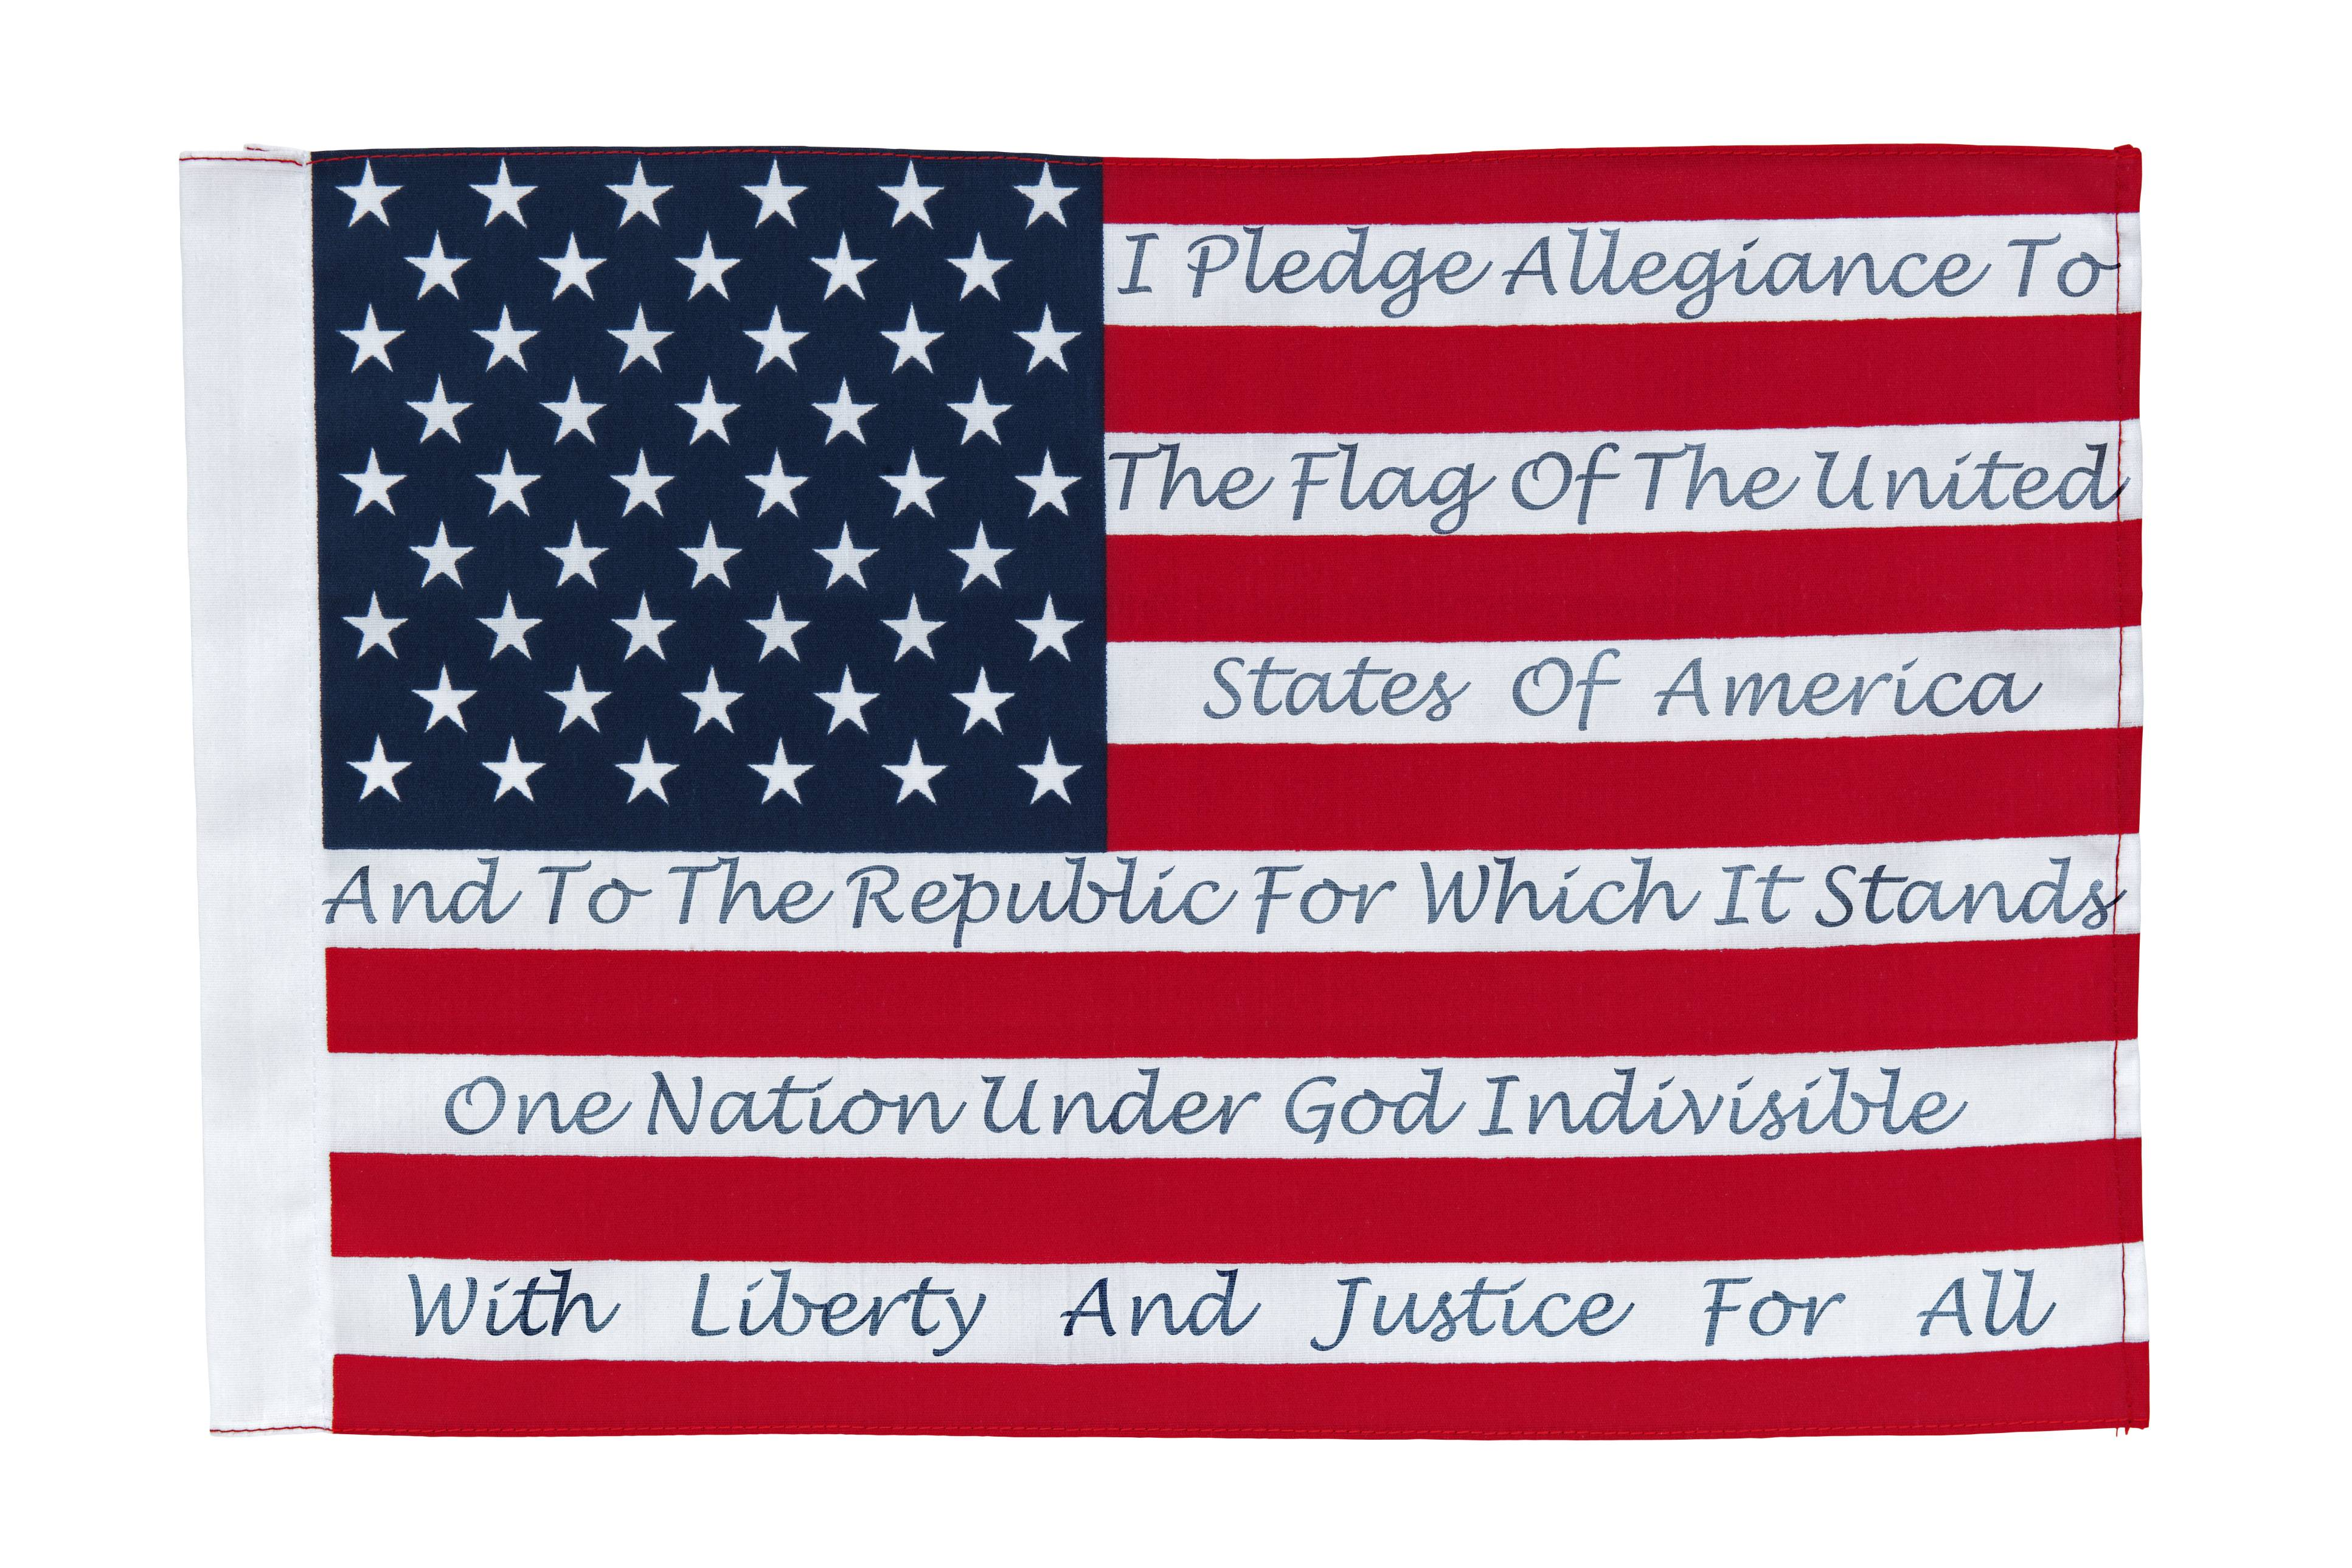 How the Pledge of Allegiance has changed since 1892